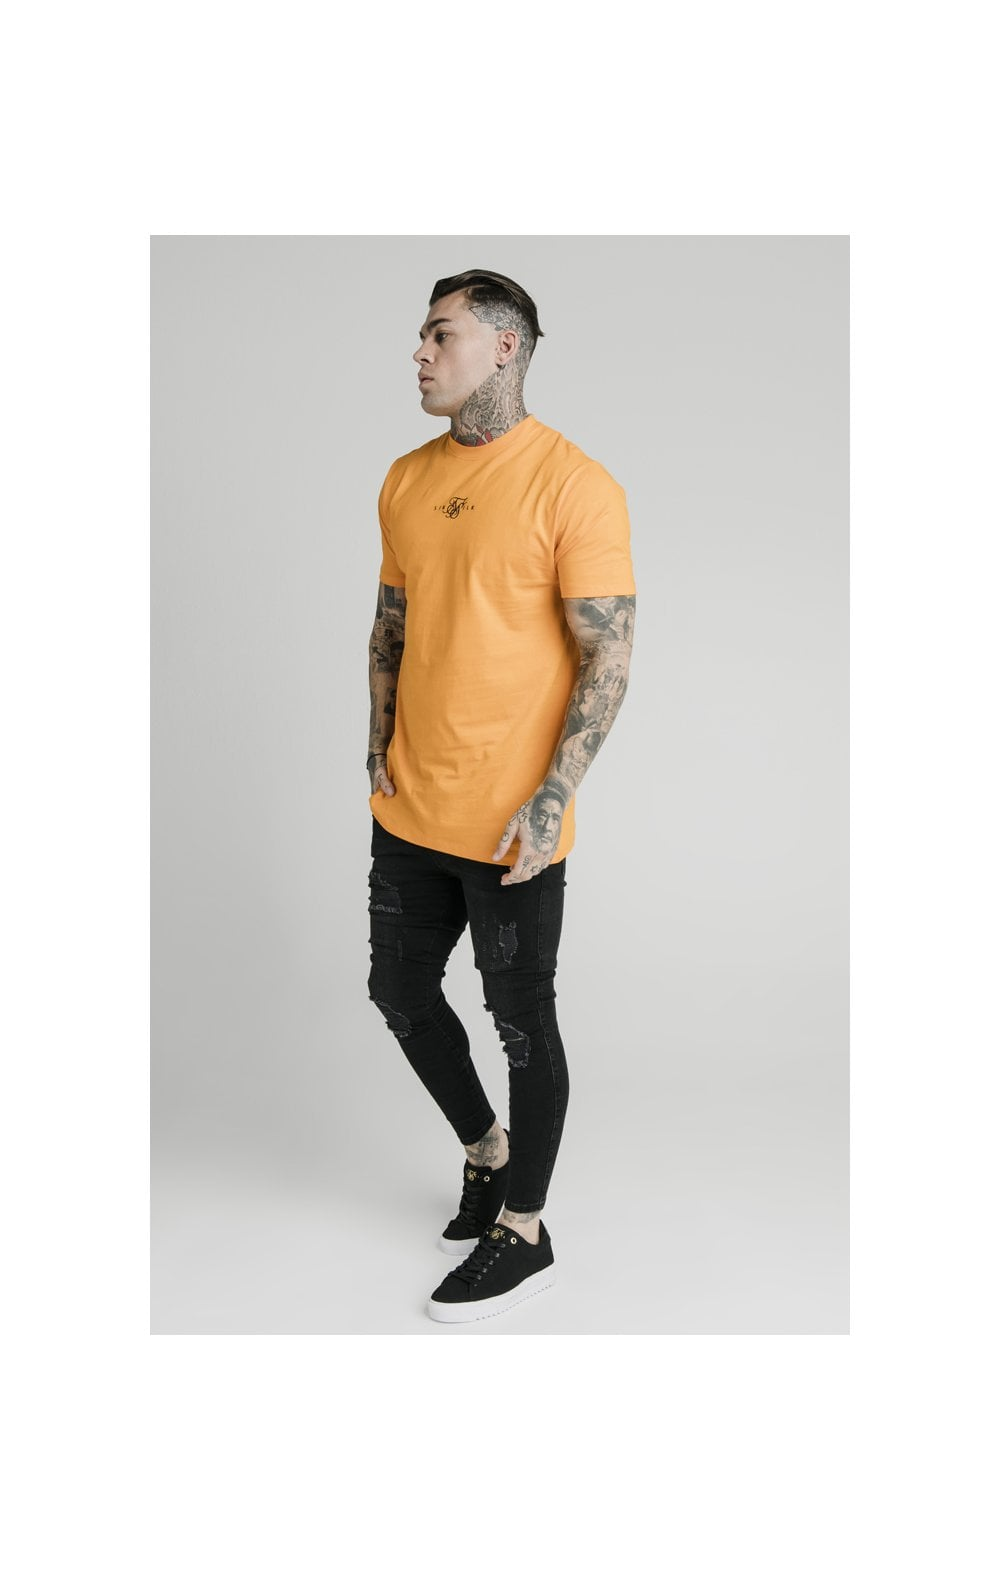 SikSilk S/S Square Hem Tee – Orange (3)